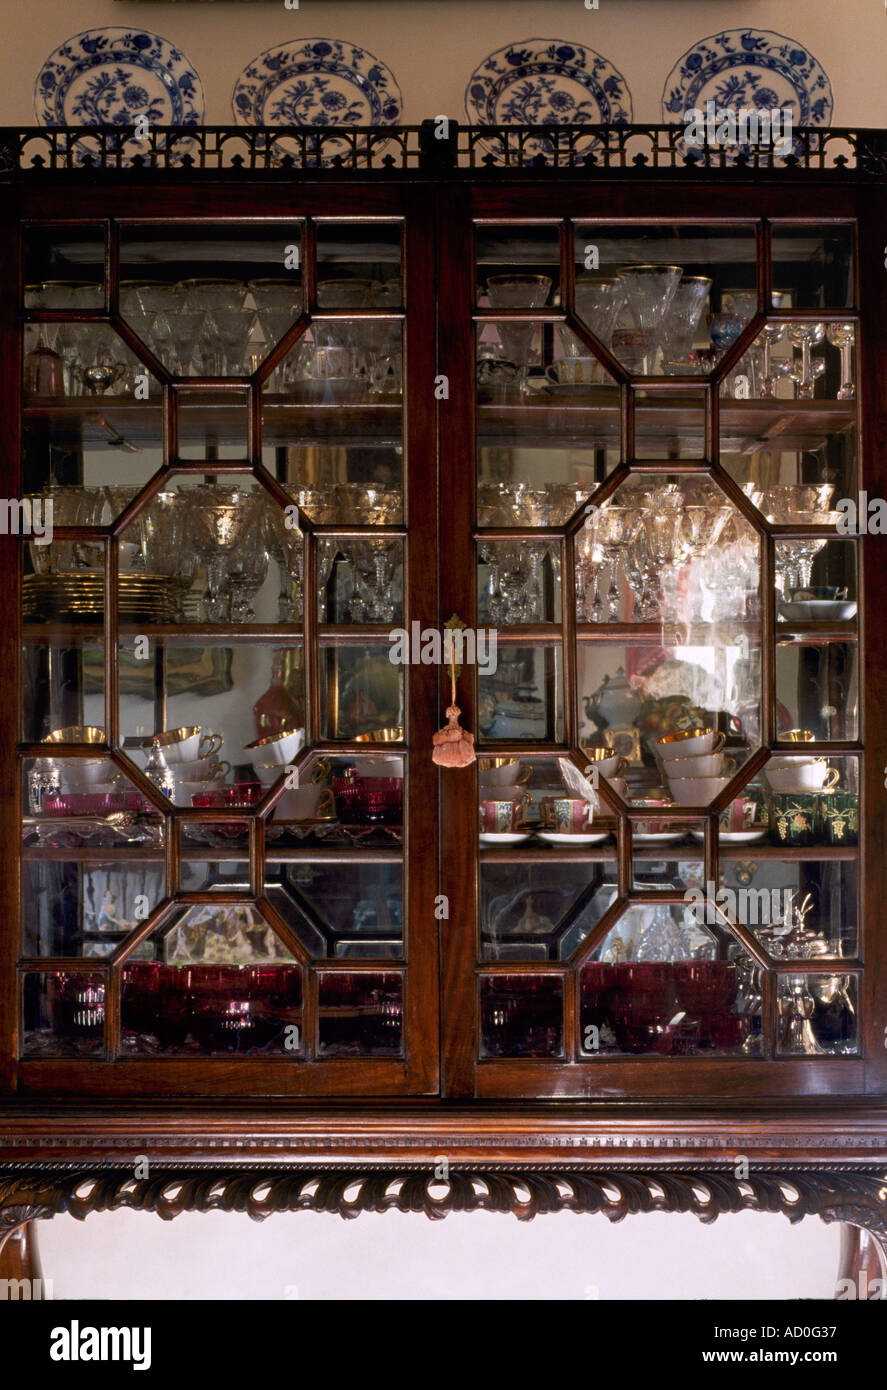 Waverley, Columbus, Mississippi, 1852. Detail of display cabinet with glassware and china in dining room. - Stock Image